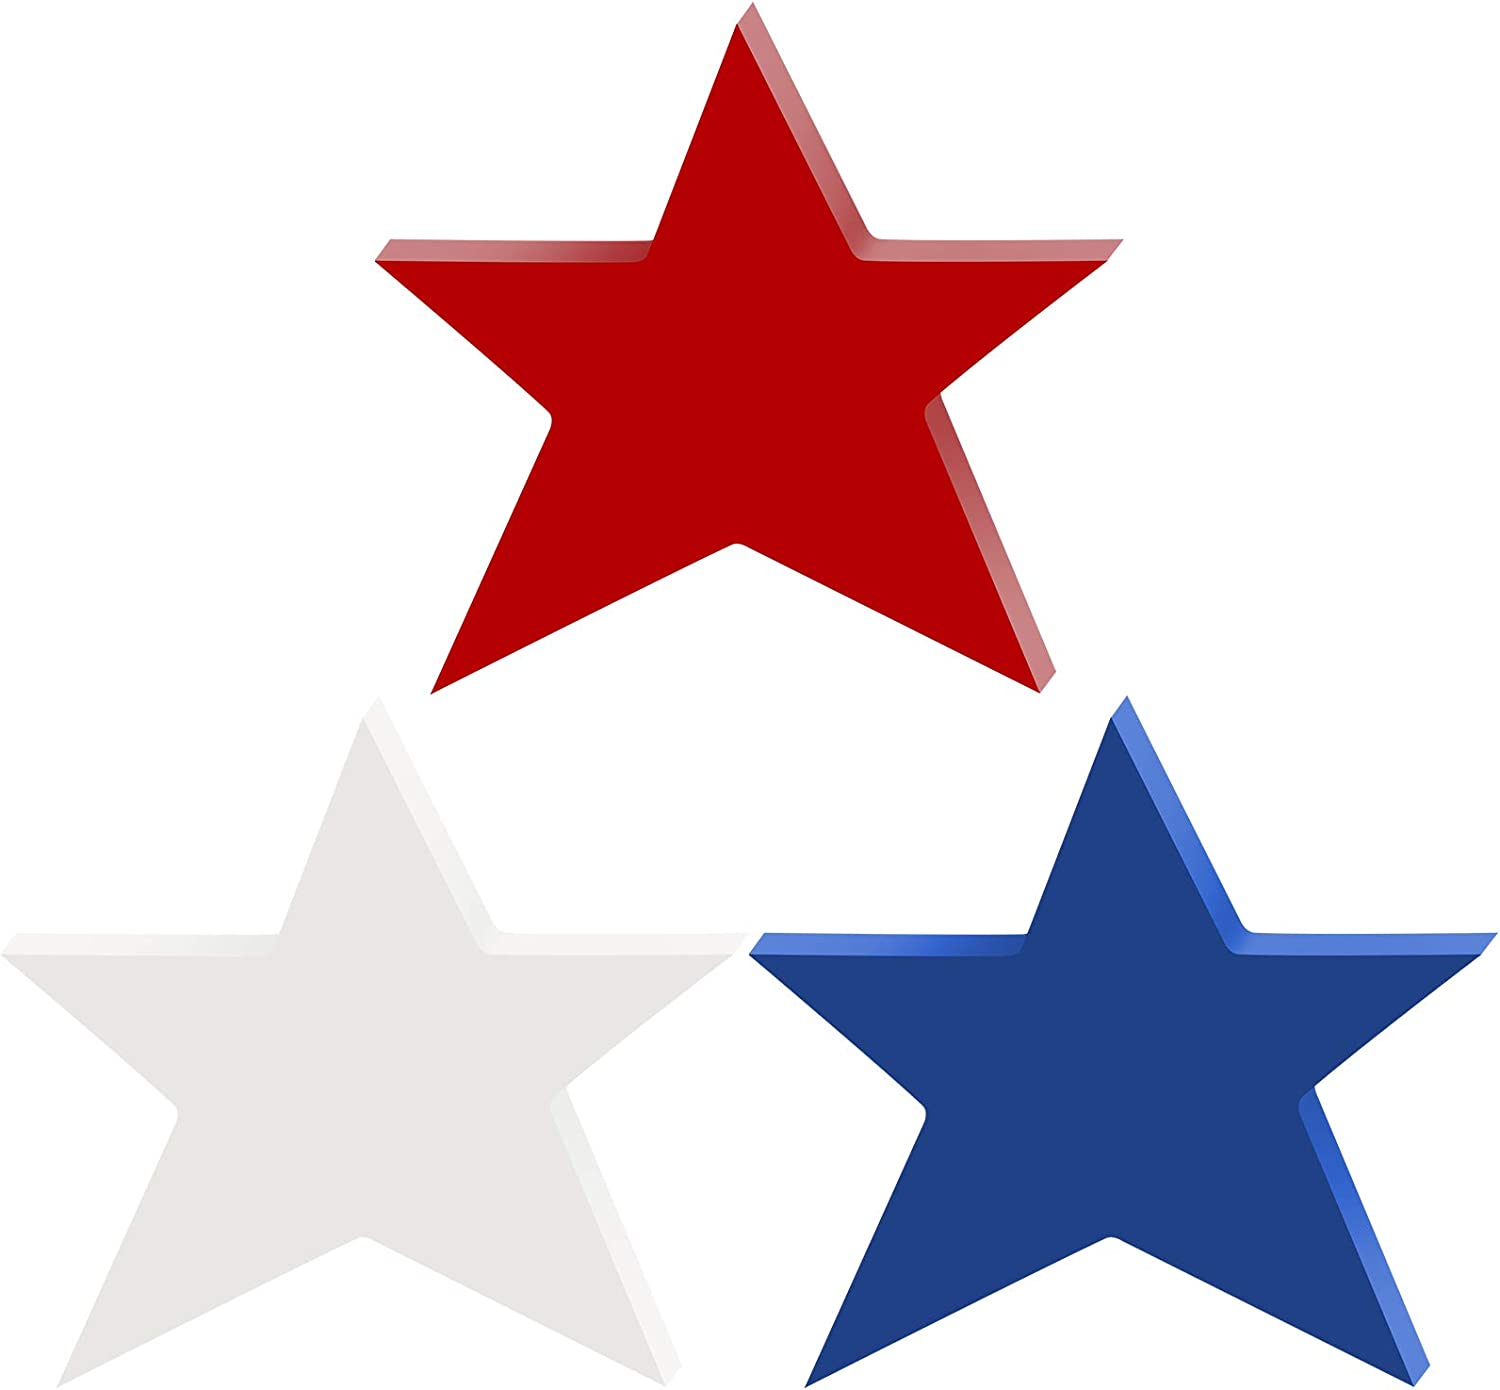 3 Pieces Patriotic Wooden Stars Independence Day Tiered Tray Decor for Home Table Desk 4th of July Memorial Day Decorations